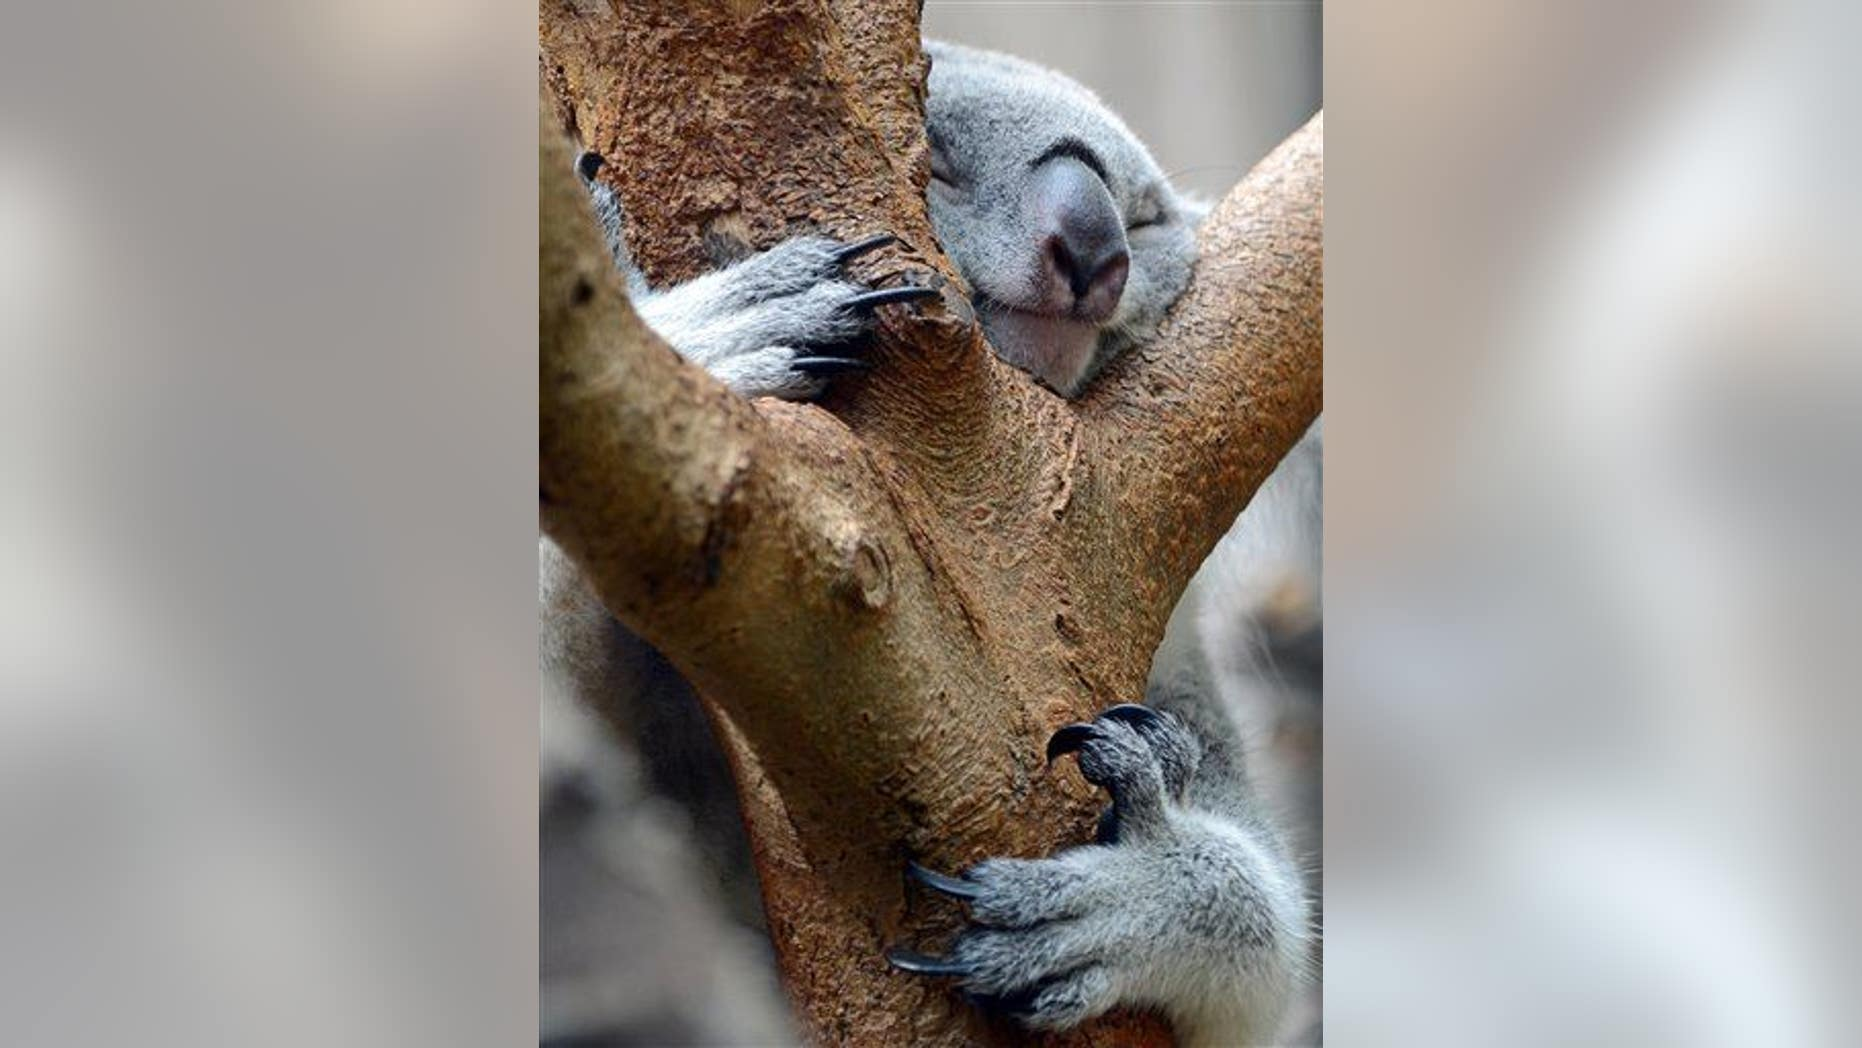 A koala hangs on a tree and sleeps during temperatures around 31 degrees Celsius (88 degrees Fahrenheit).